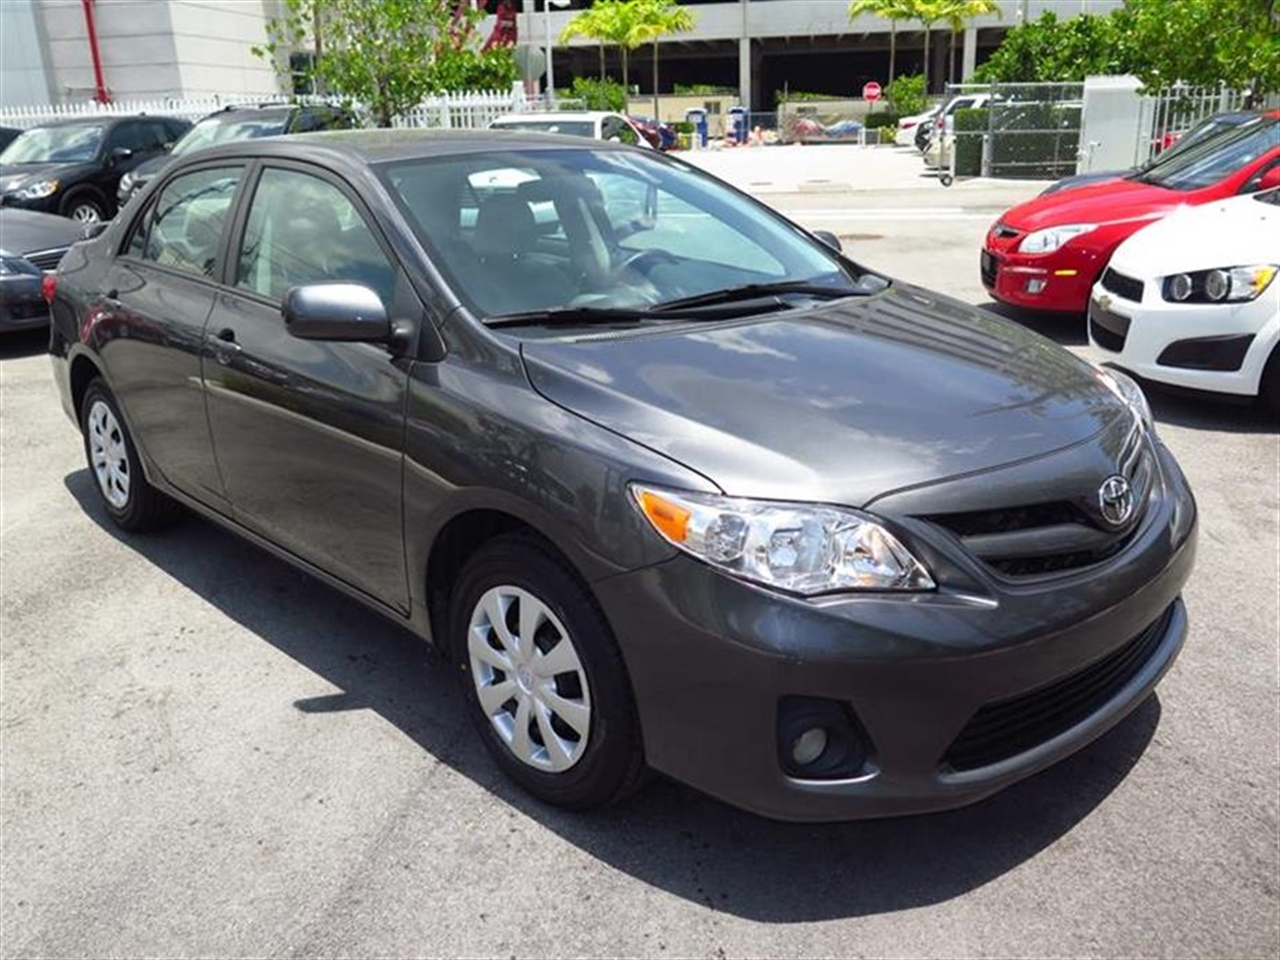 2011 TOYOTA COROLLA 4dr Sdn Auto LE 20266 miles 4 cup holders 12V aux pwr outlet 3-spoke tilt